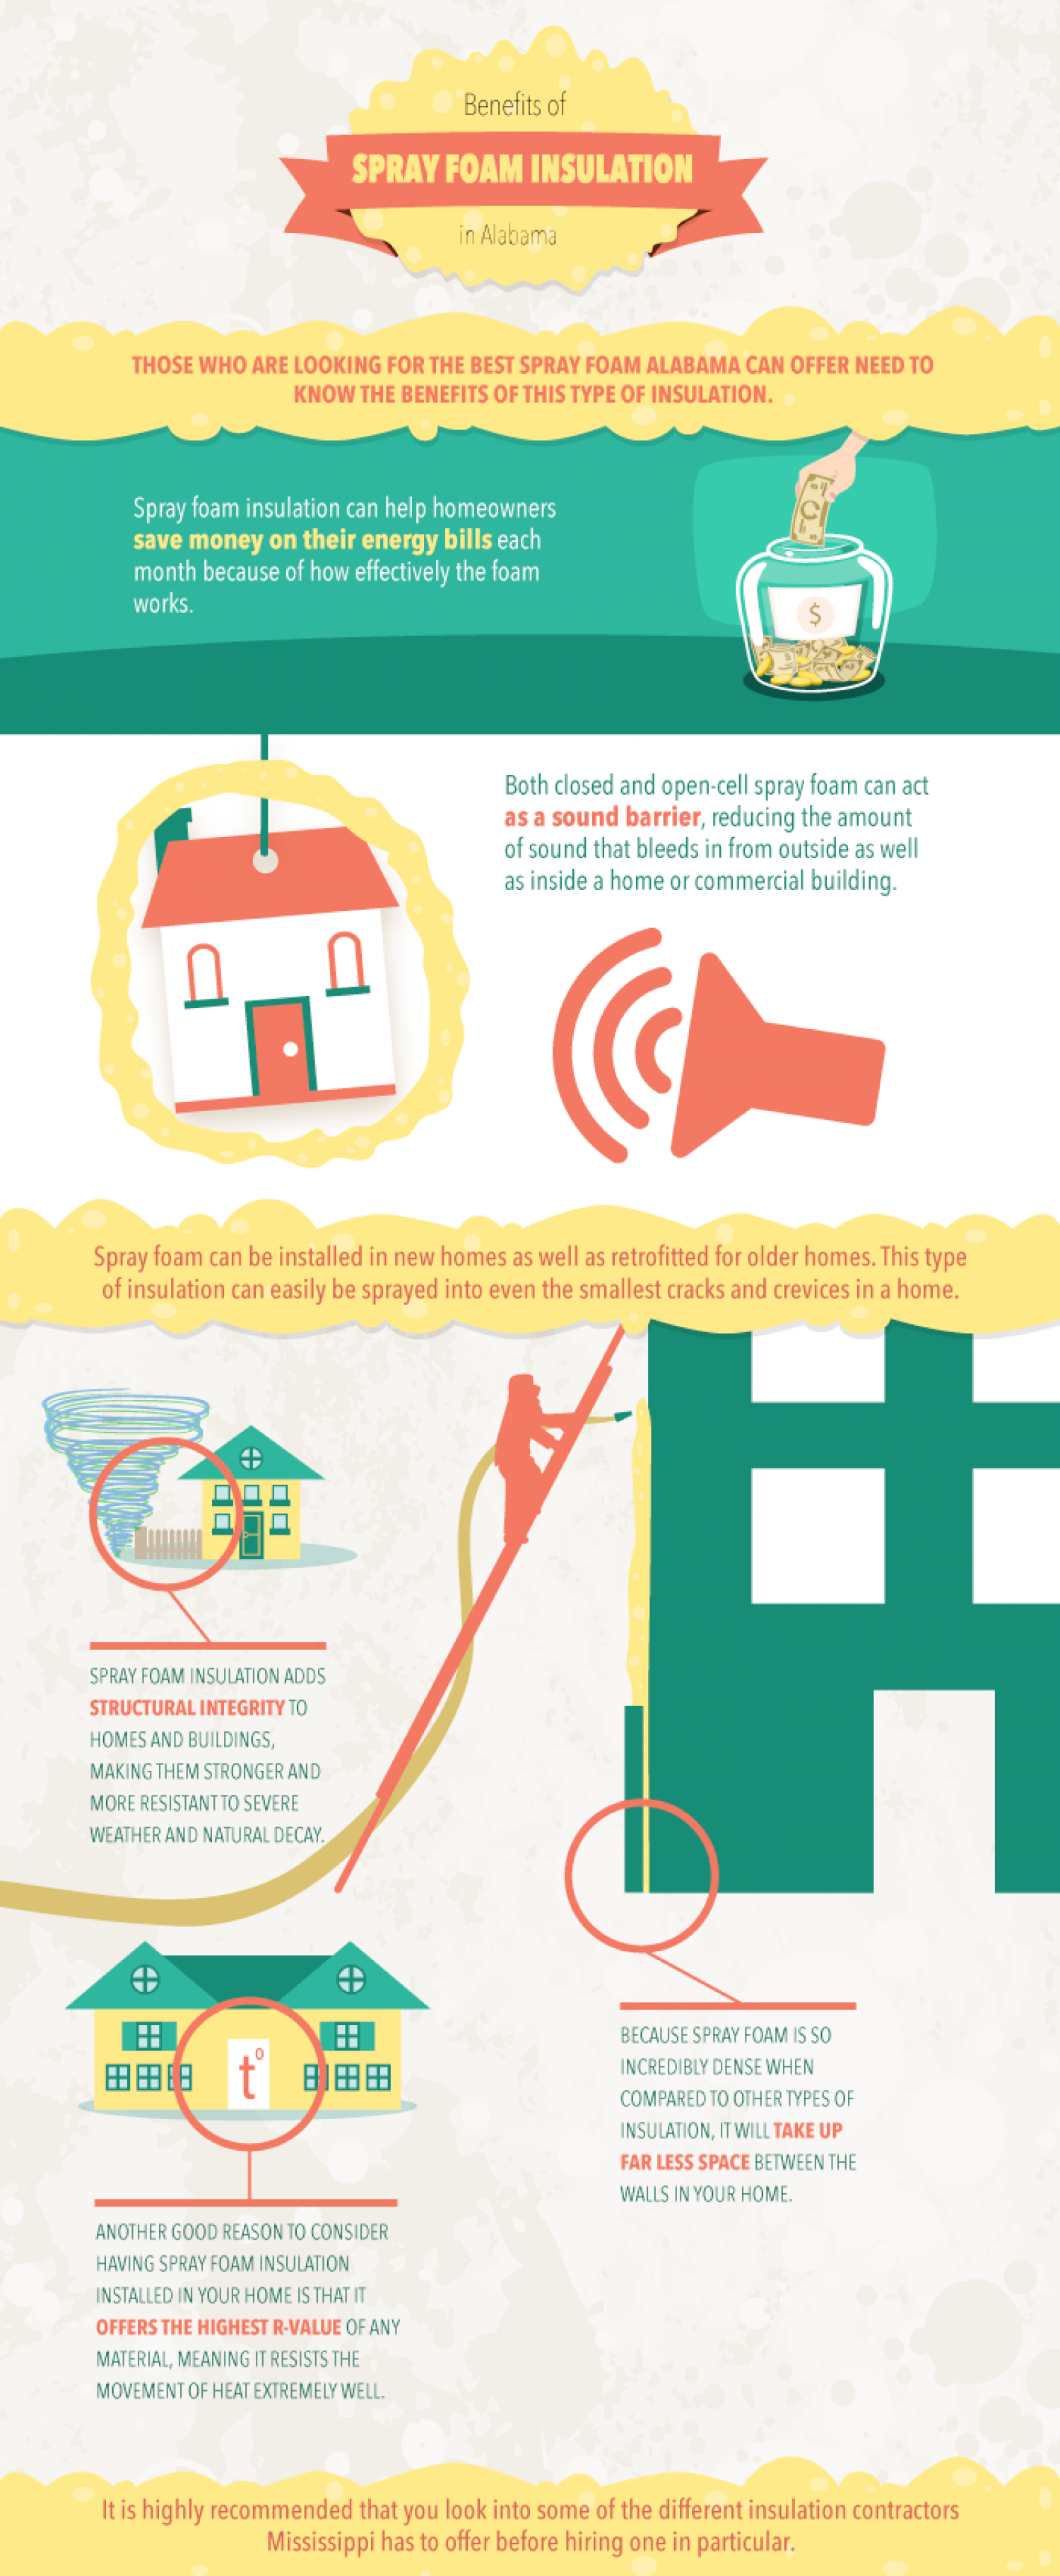 Benefits of Spray Foam Insulation | Visual.ly